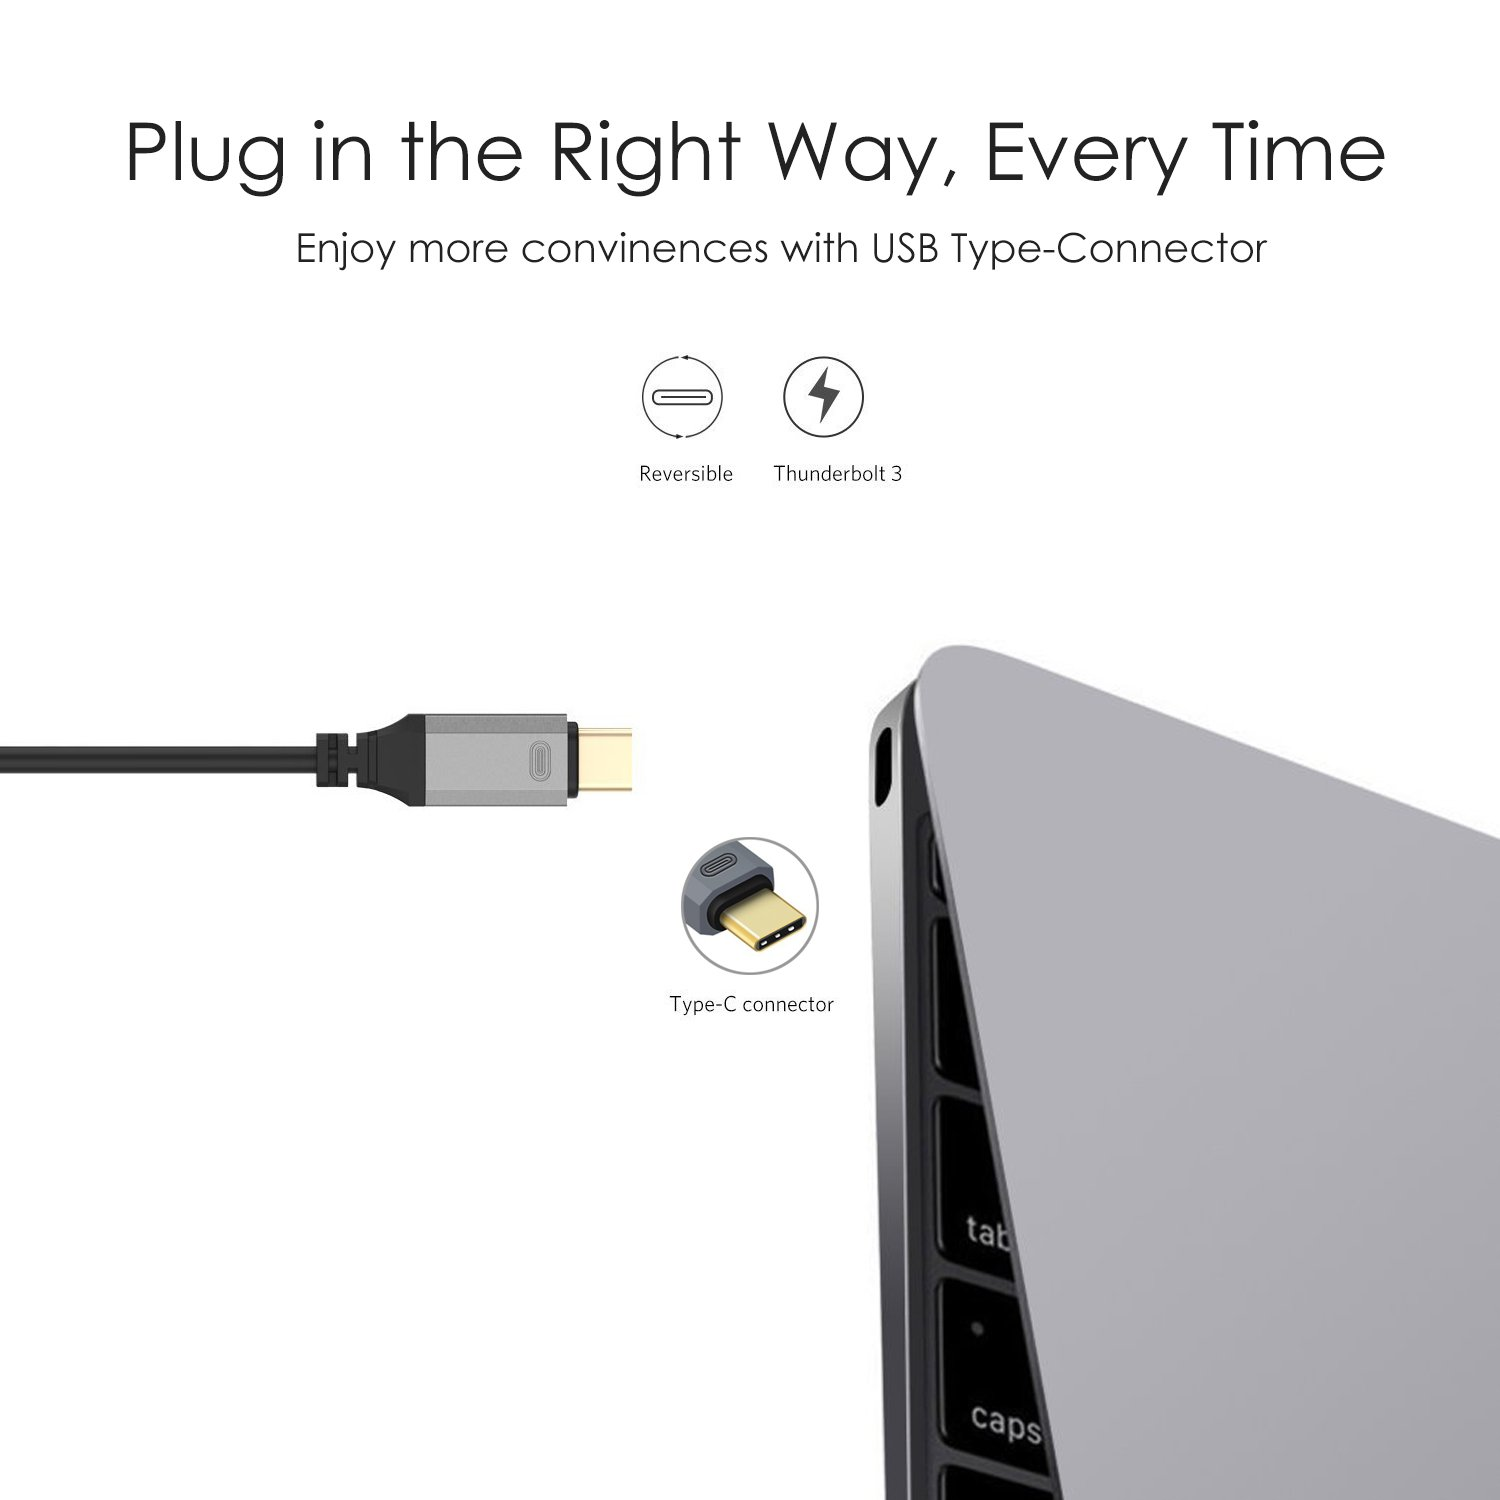 USB C to HDMI Cable,MacBook Pro USB 3.1 Type-C to HDMI 4K Digital AV Adapter Charger Cord,Android LG Samsung Galaxy HDMI Converter Dongle for TV Monitor Projector,Apple iMac Thunderbolt HDMI Connector by AIWADE (Image #8)